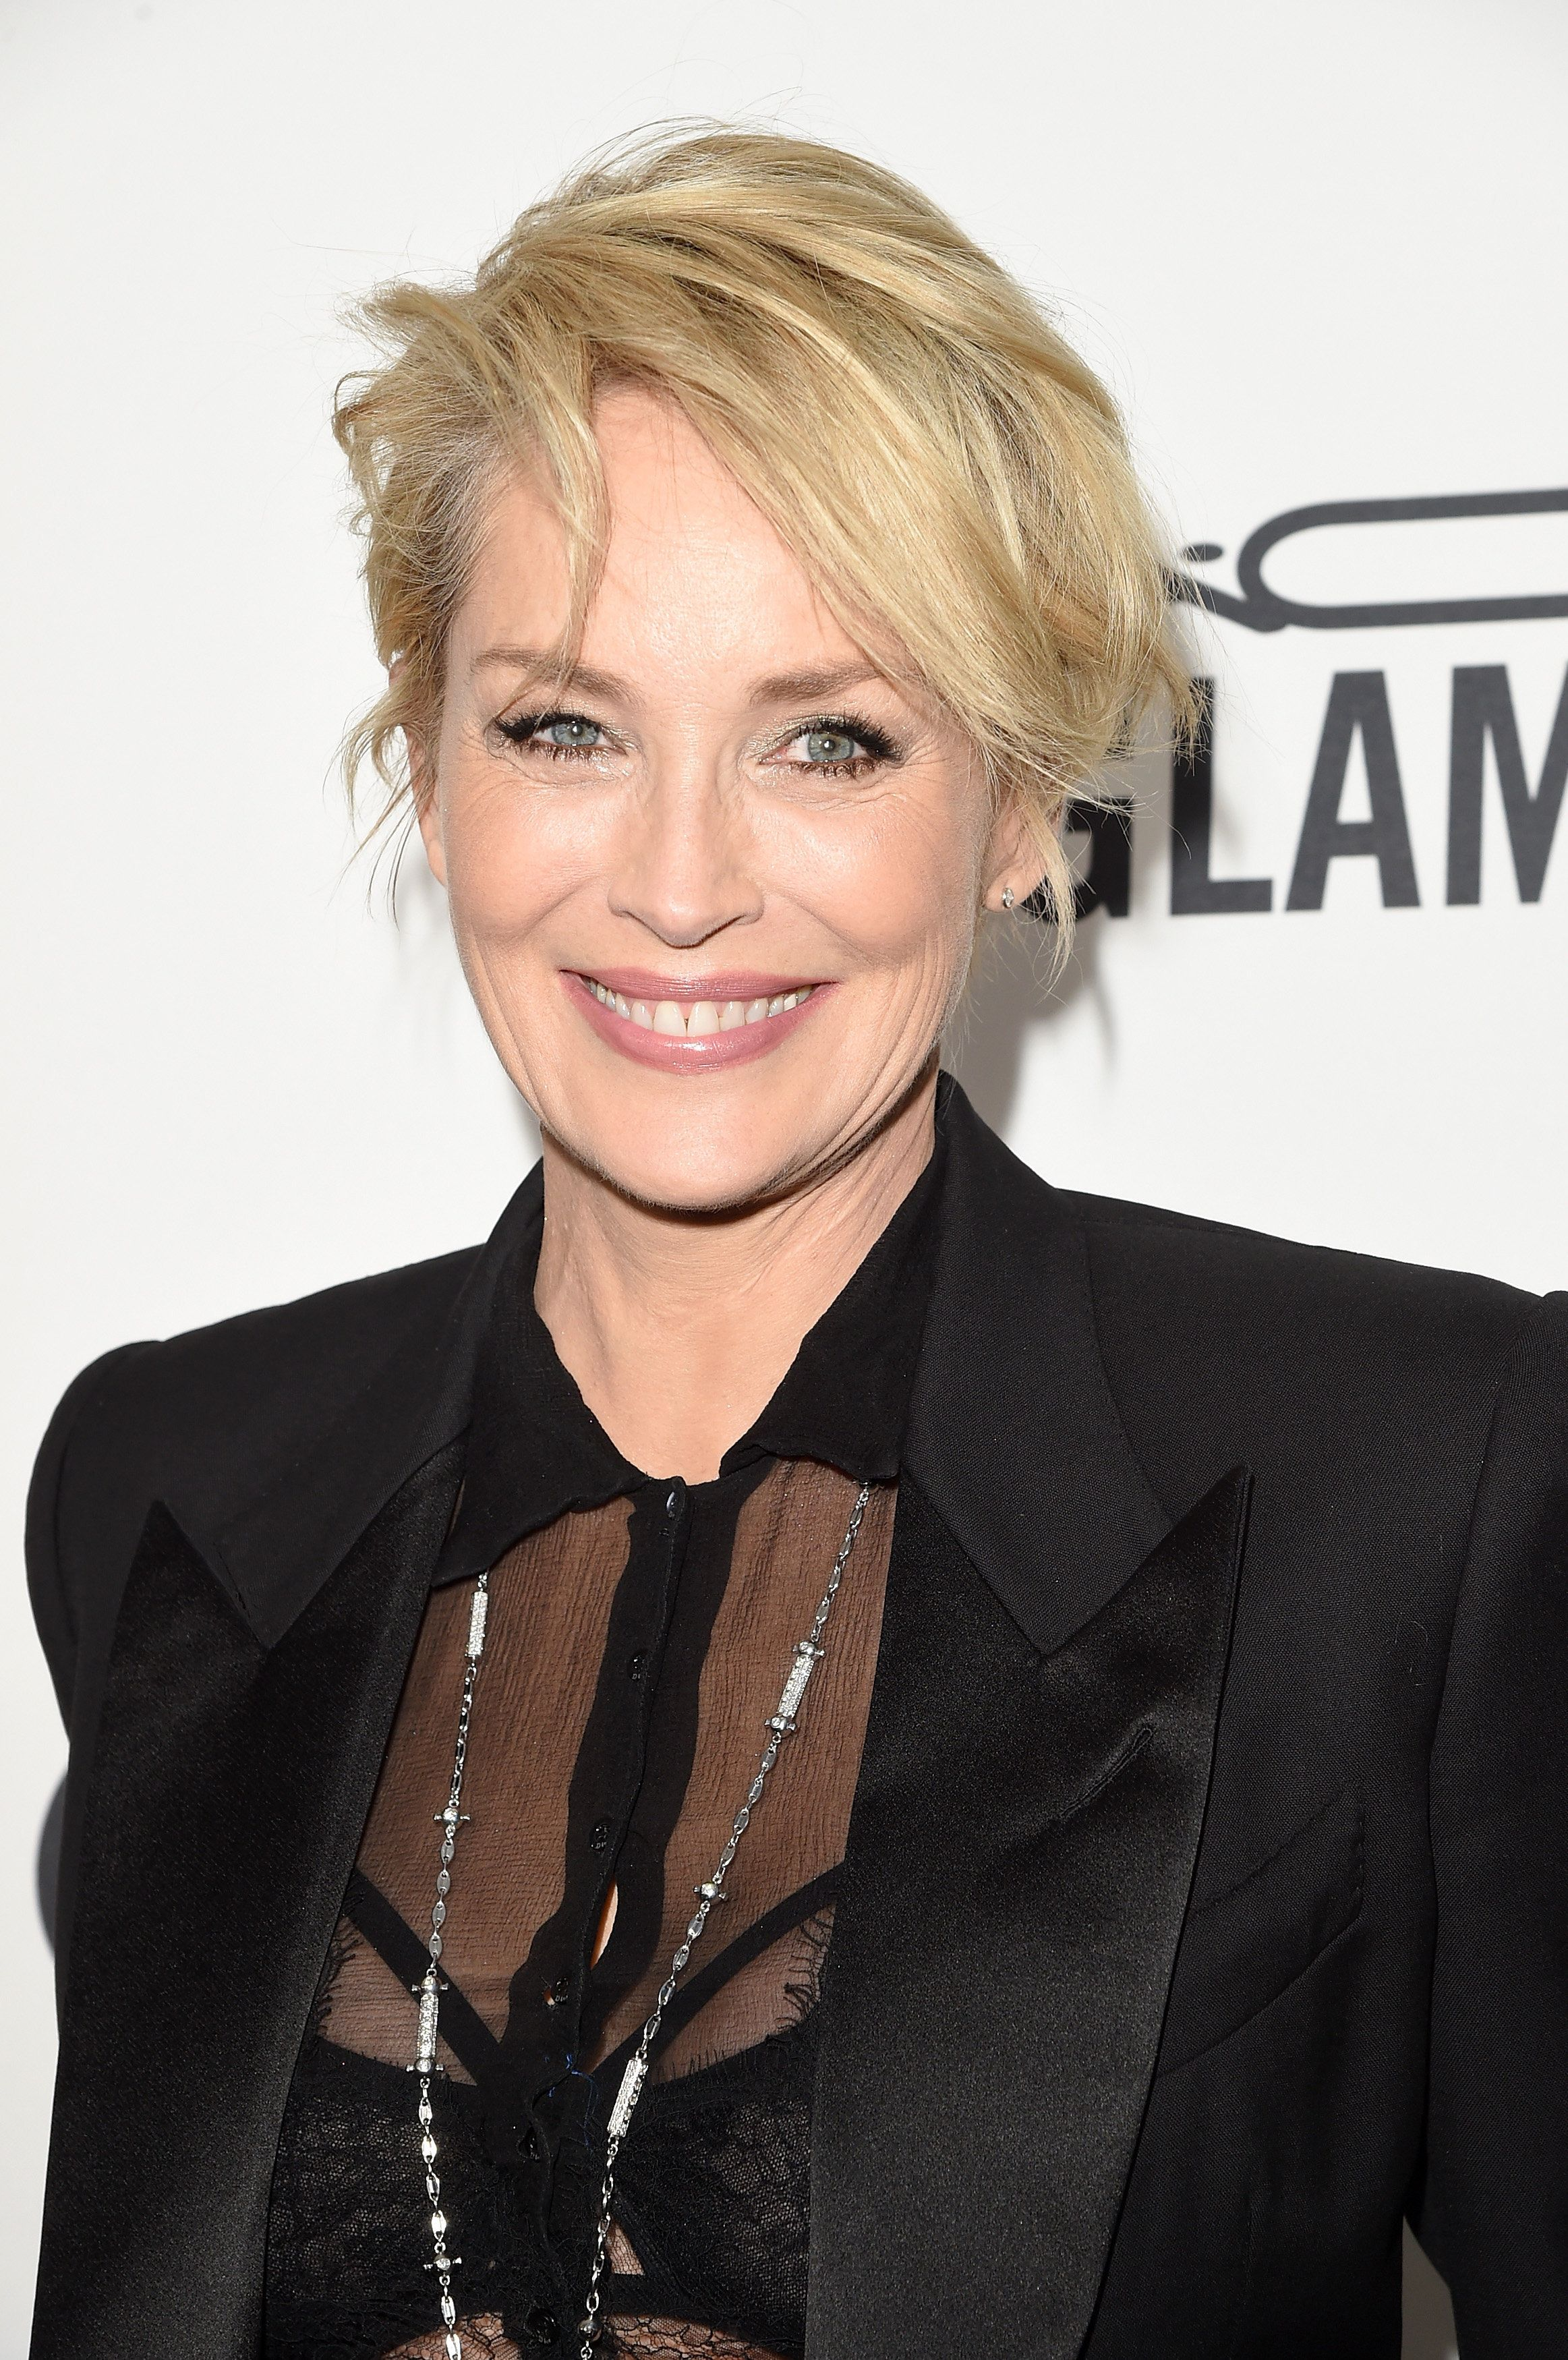 HOLLYWOOD, CA - OCTOBER 29:  Actress Sharon Stone attends amfAR's Inspiration Gala Los Angeles at Milk Studios on October 29, 2015 in Hollywood, California.  (Photo by Jason Merritt/Getty Images for amfAR)